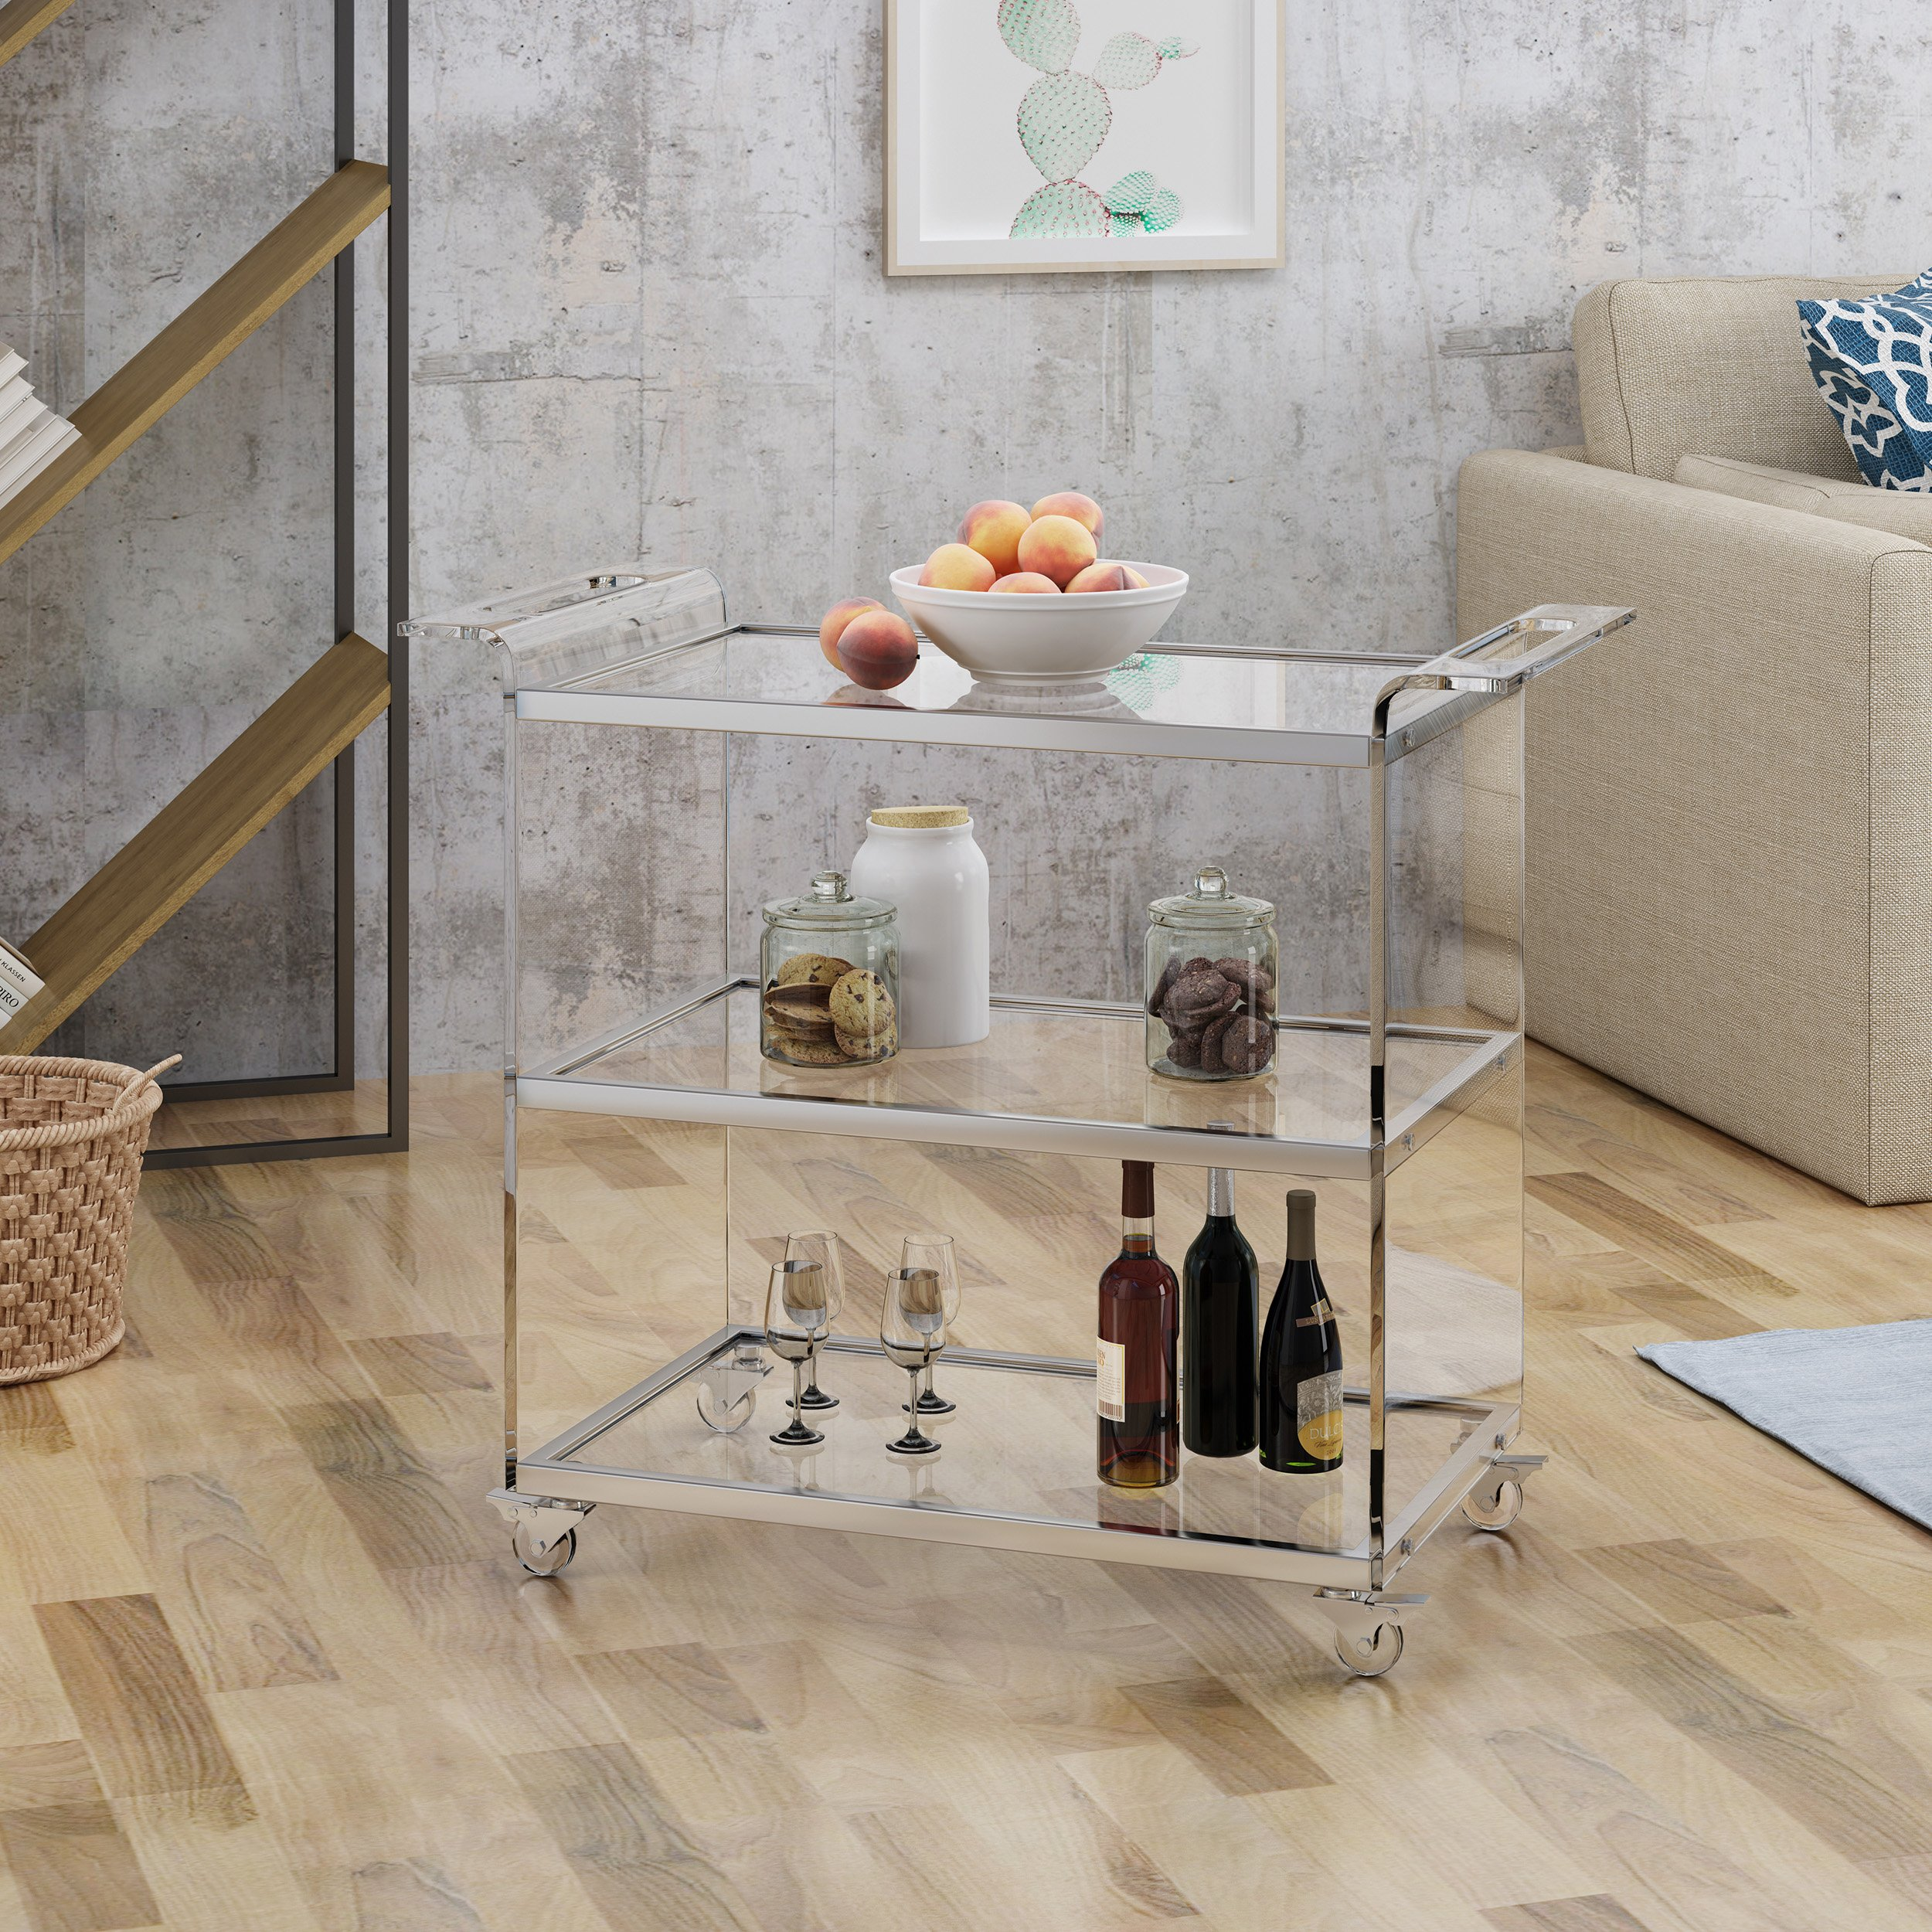 Christopher Knight Home Evee Acrylic Bar Trolley with Glass Shelves, Clear by Christopher Knight Home